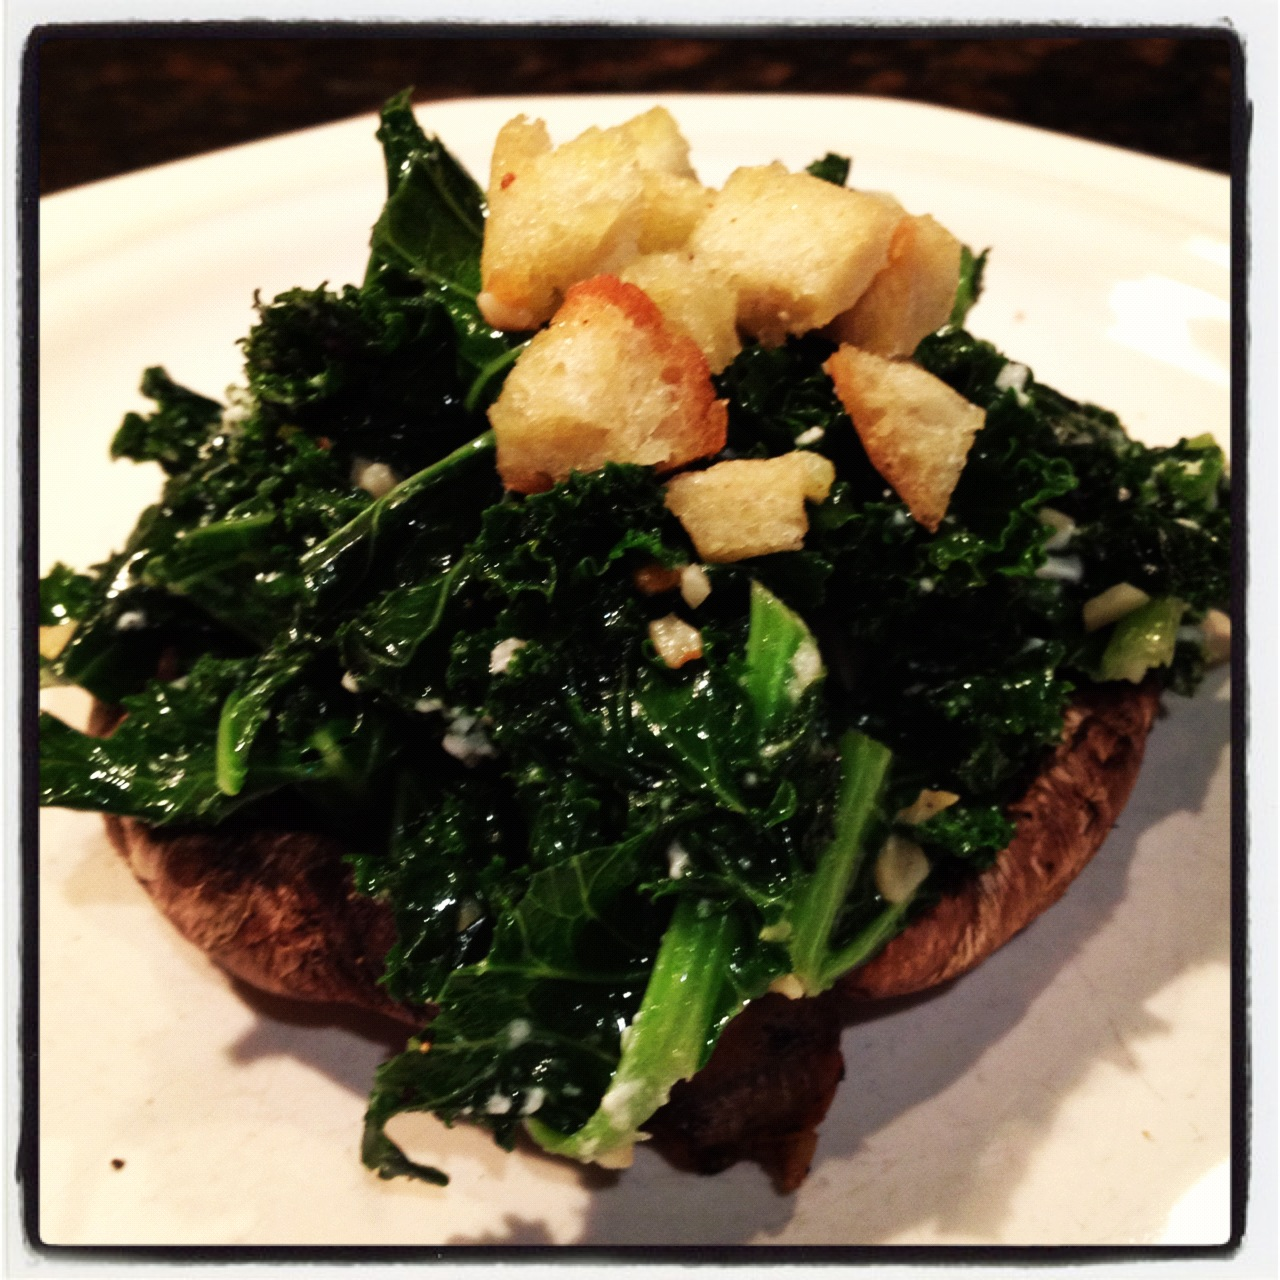 Grilled Portobello Mushrooms with Sautéed Kale and Goat Cheese